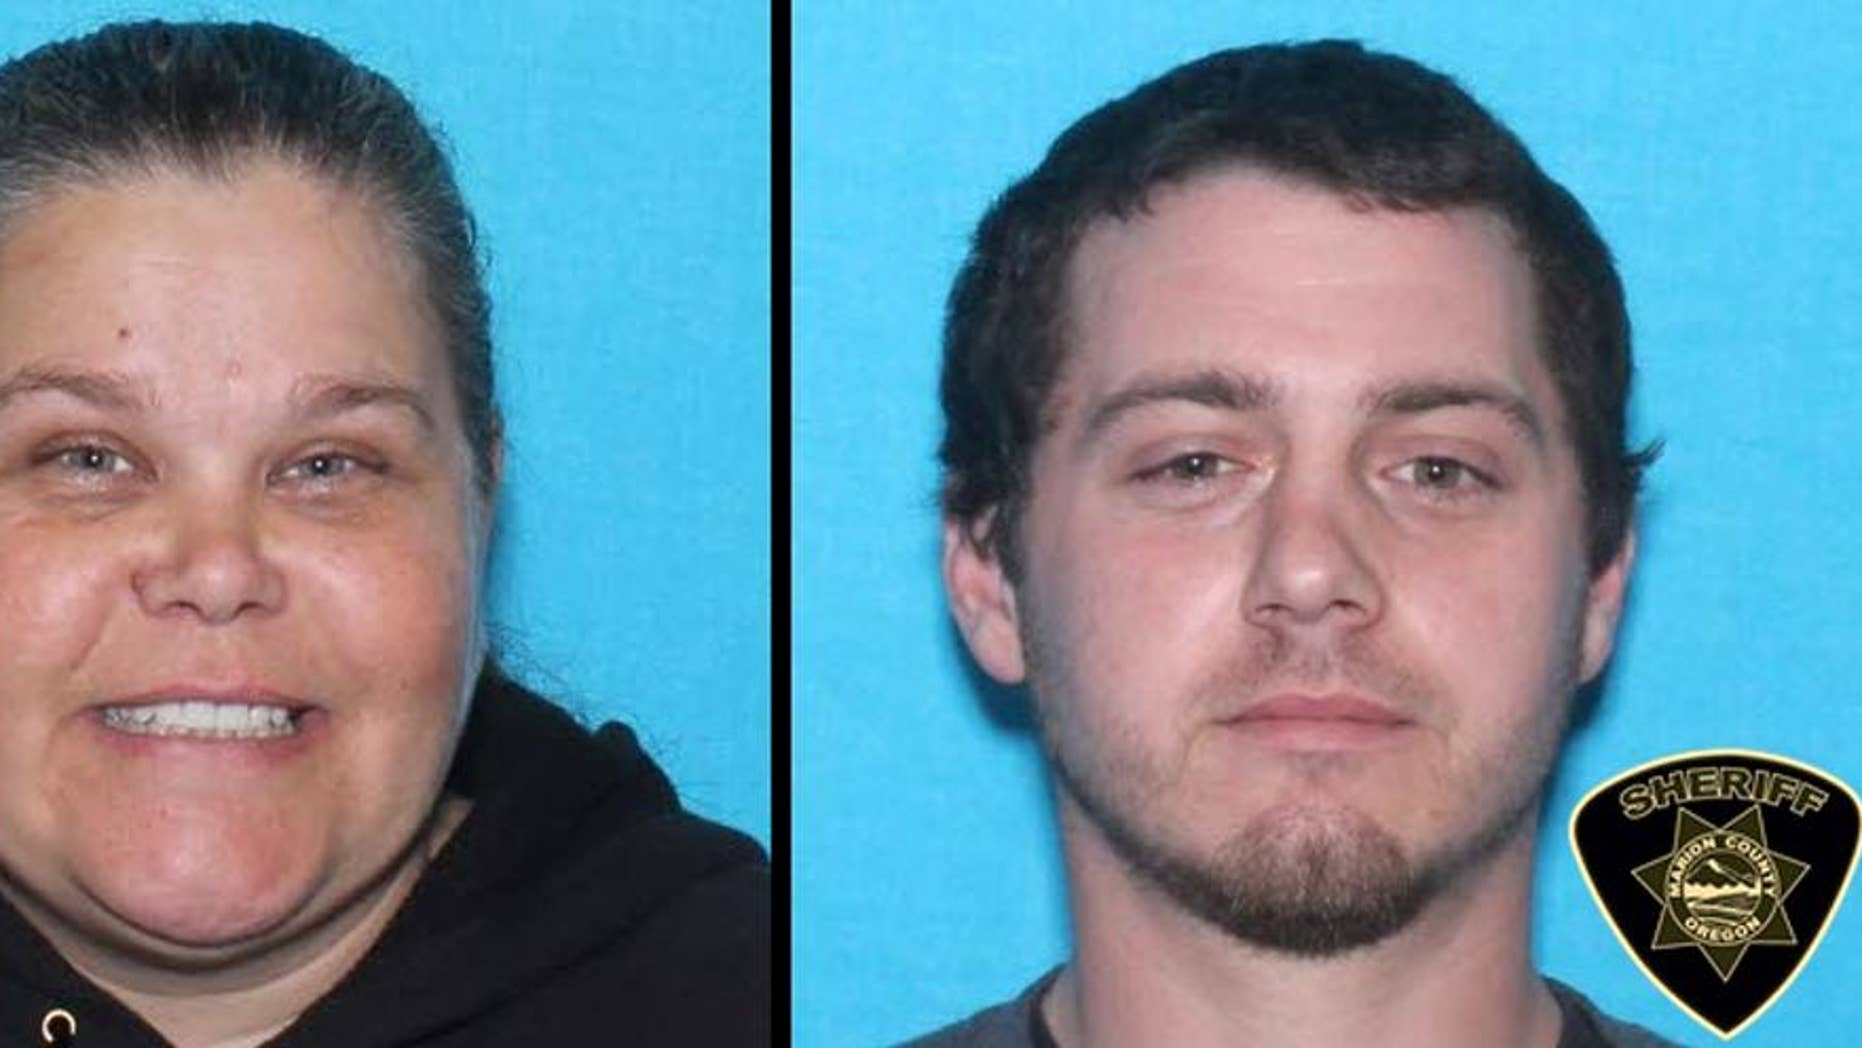 "This undated law enforcement booking combination photo provided by the Marion County, Ore., Sheriff's Office shows Bobbi Ann Finley of Dallas, Ore., 39, and her husband Zackerie House, 27. Authorities are searching for the pair, saying Finley and her husband have been writing fraudulent checks in three states. Finley, dubbed the ""Military Mistress,"" got her nickname in 2010 when national news outlets spotlighted allegations she went from one military base to the next, marrying service members to gain access to their bank accounts. In all, she married 14 U.S. service members. (AP Photo/Marion County Sheriff's Office)"